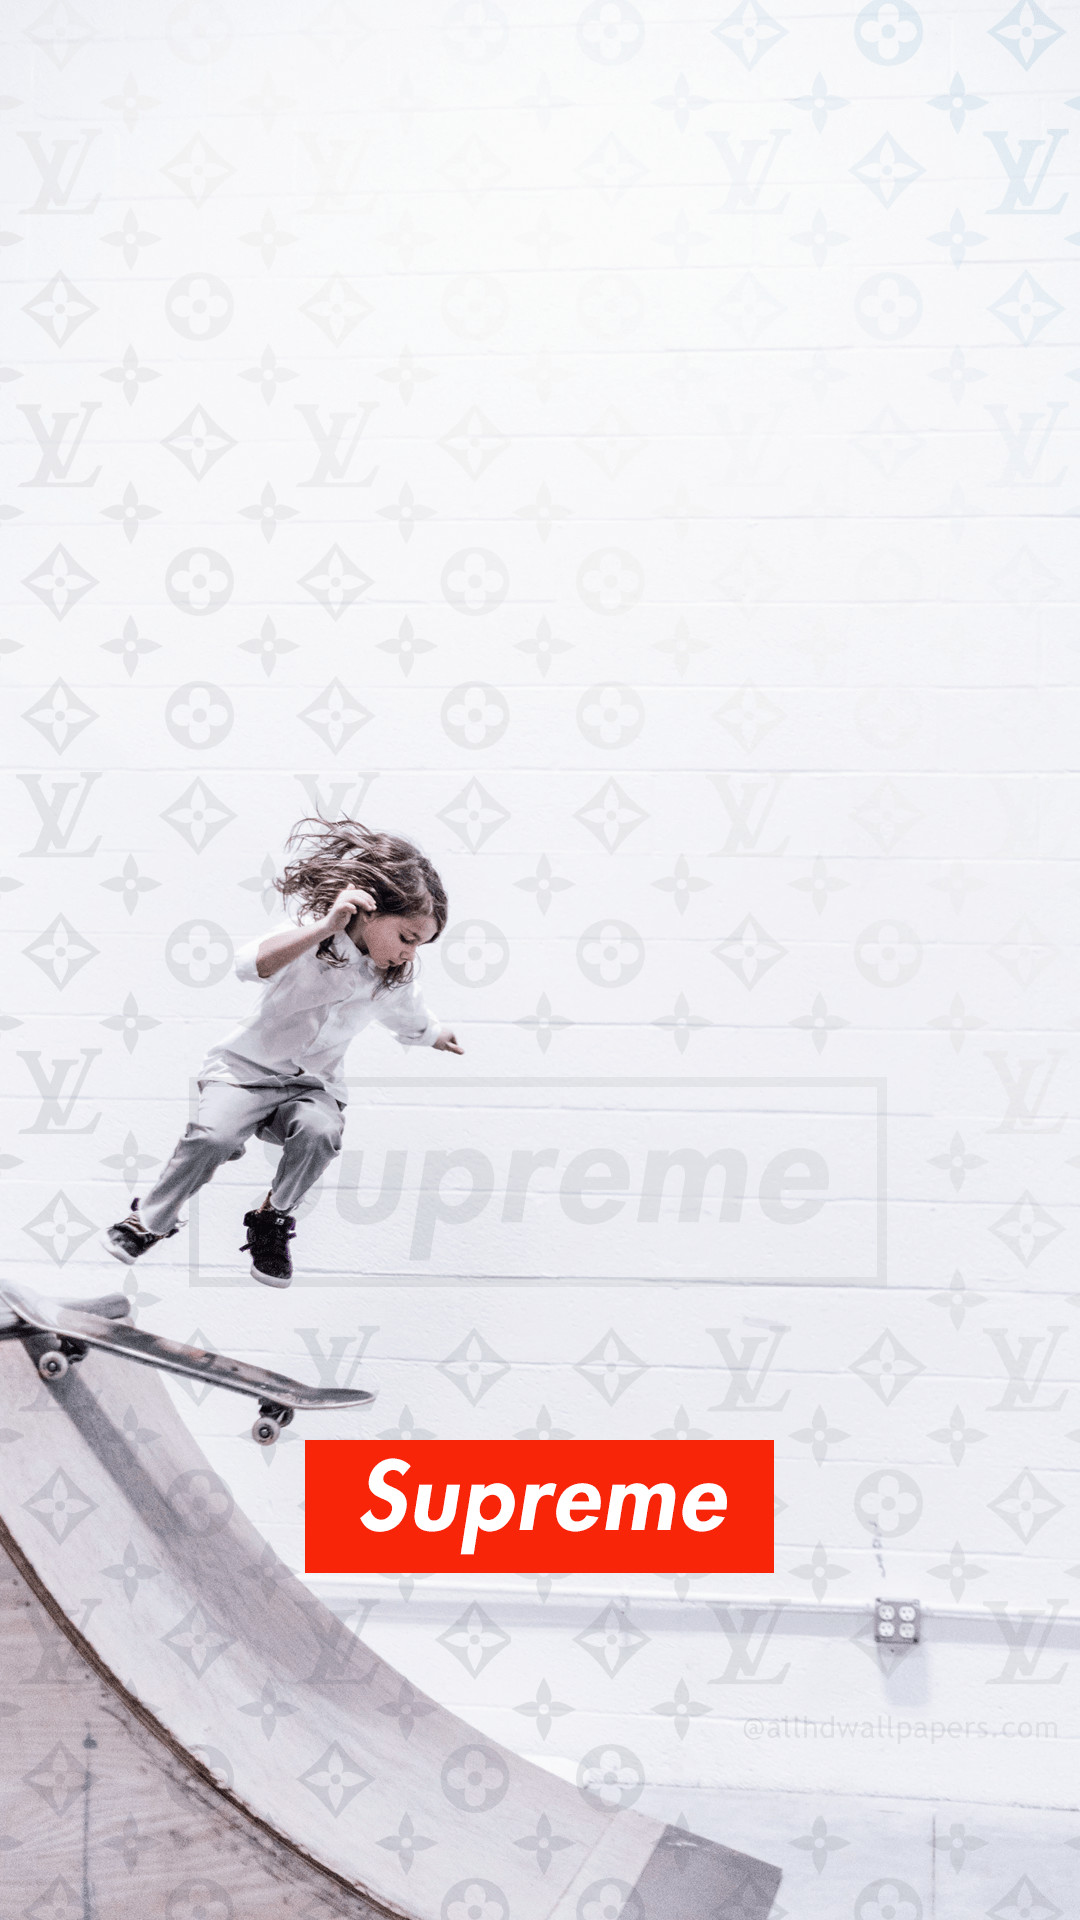 1080x1920 ... Skate board Supreme hd wallpapers